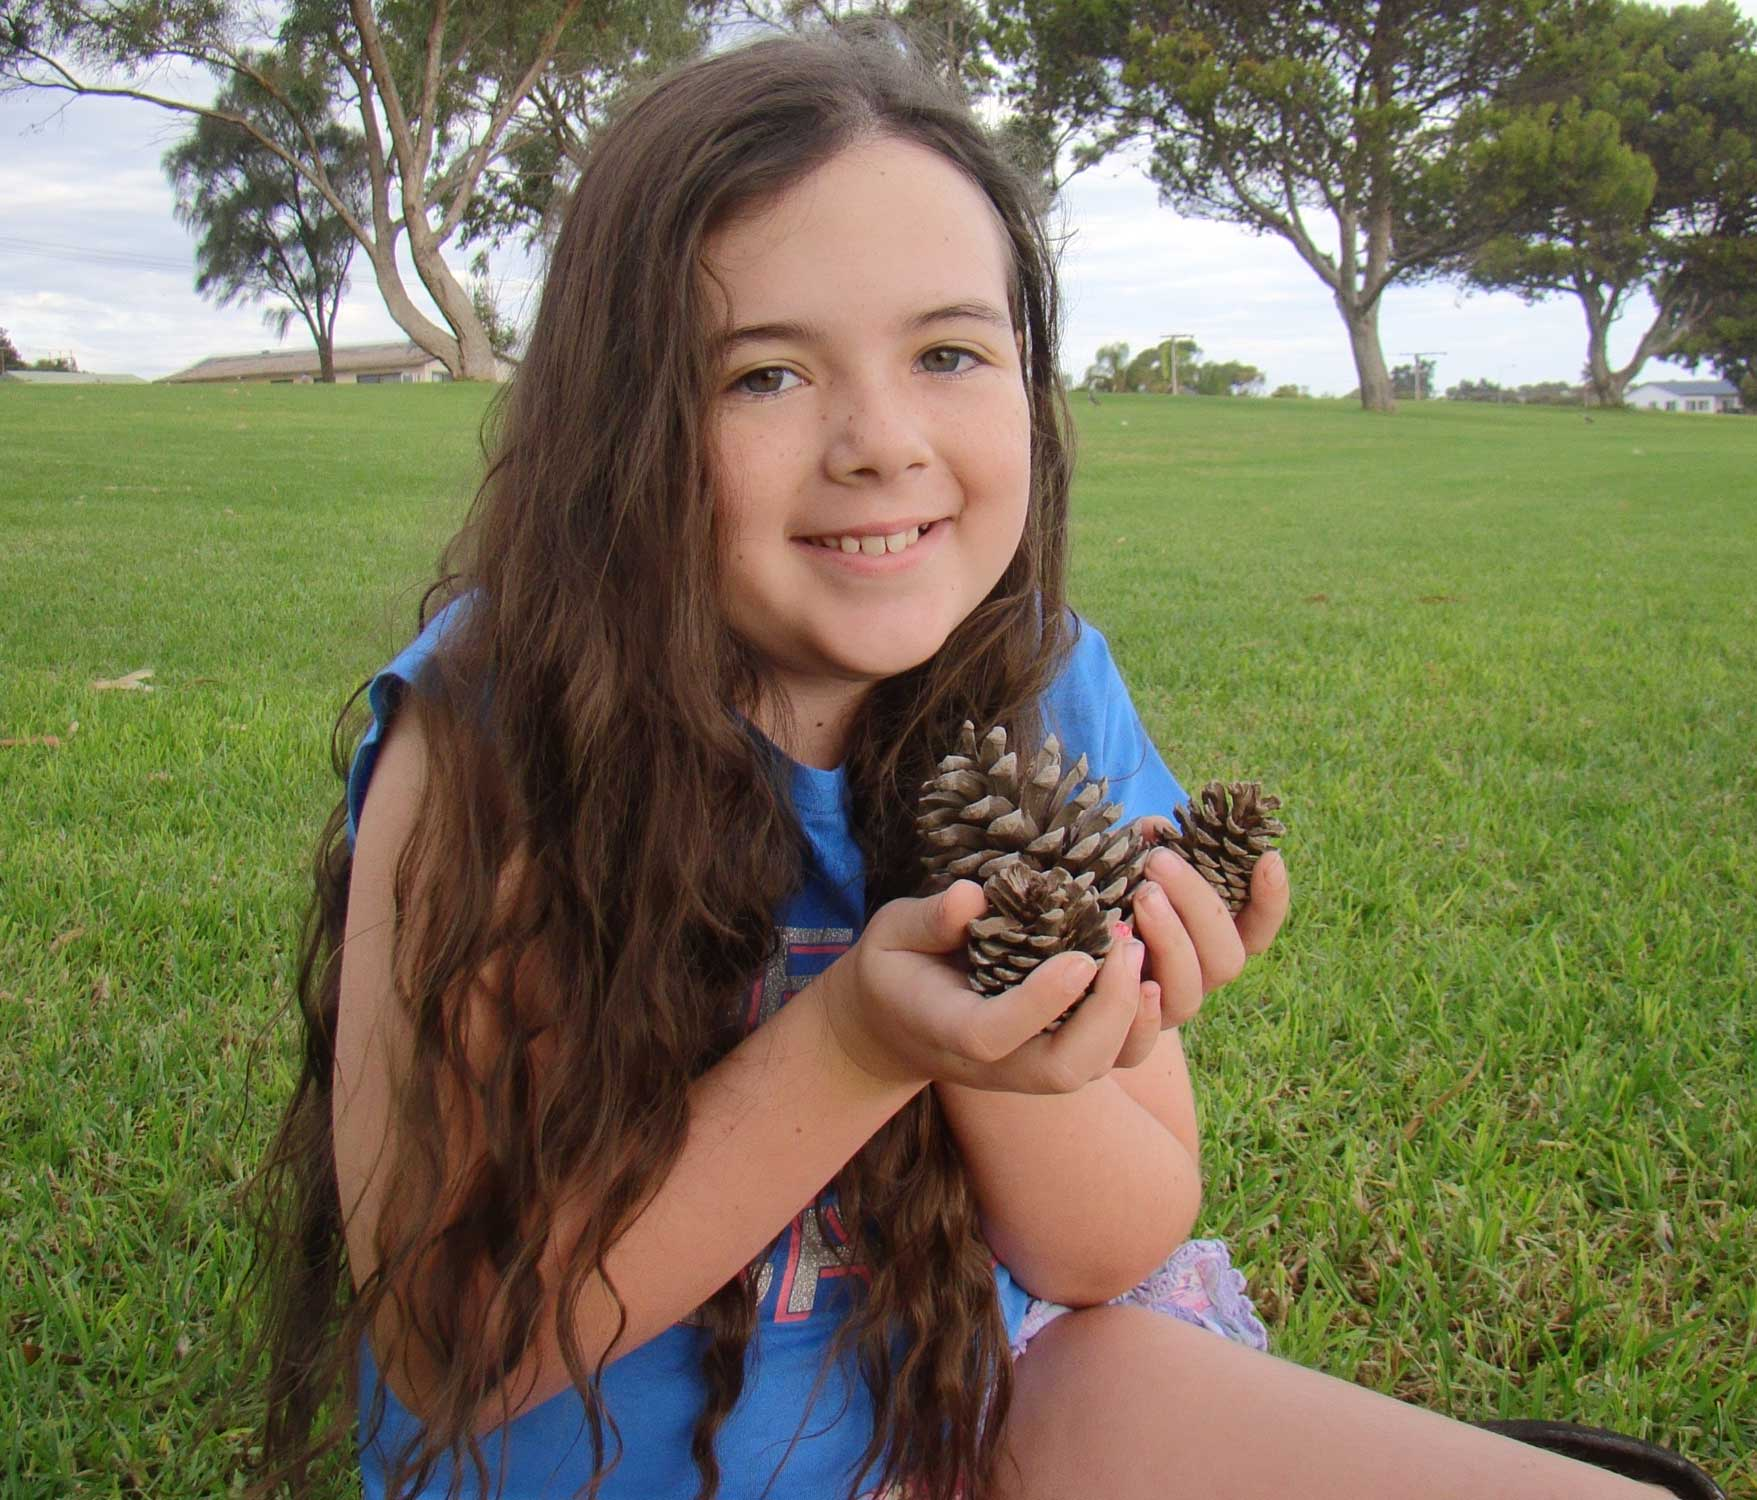 Tookii things to do with kids pine cones one of the outdoor activities for kids